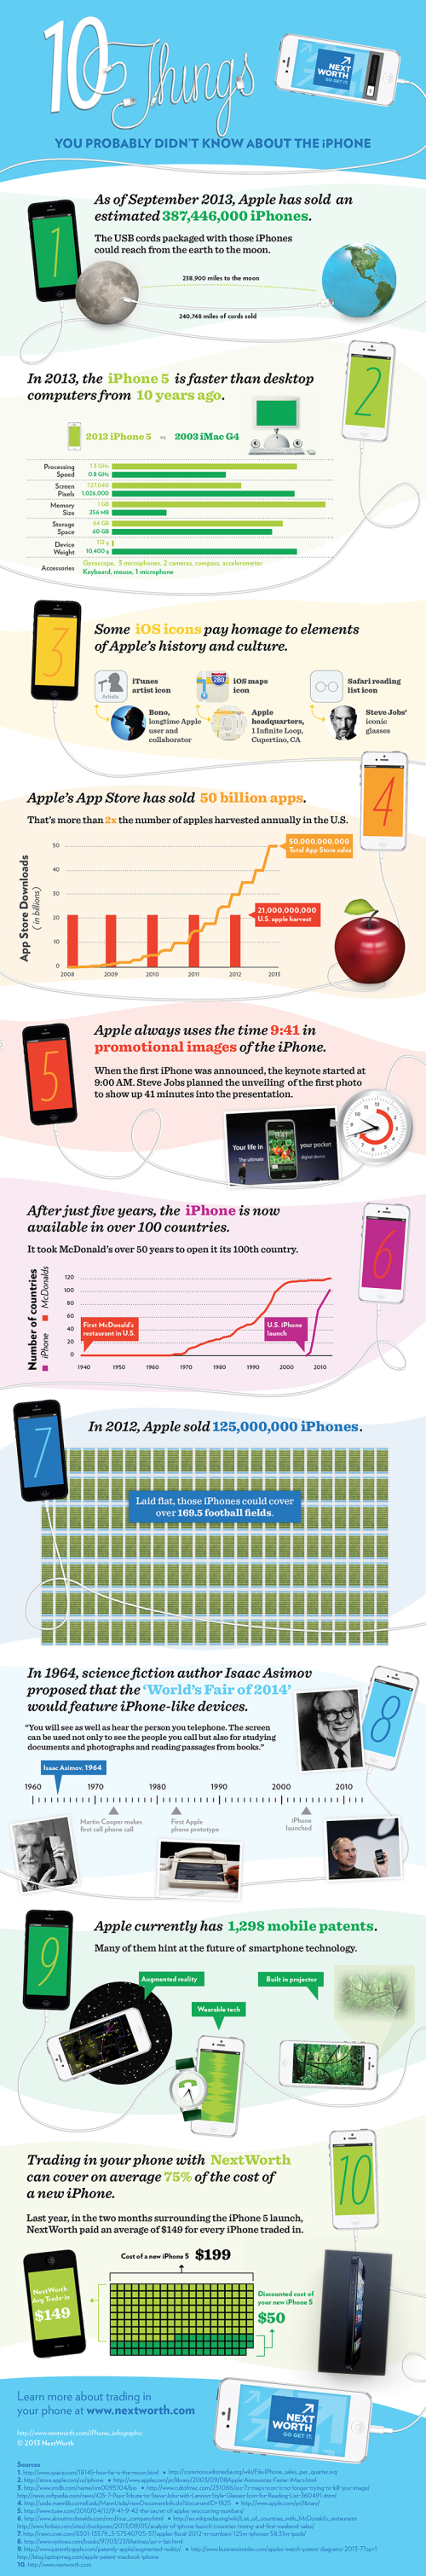 10 Things You Probably Didn't Know About the iPhone infographic